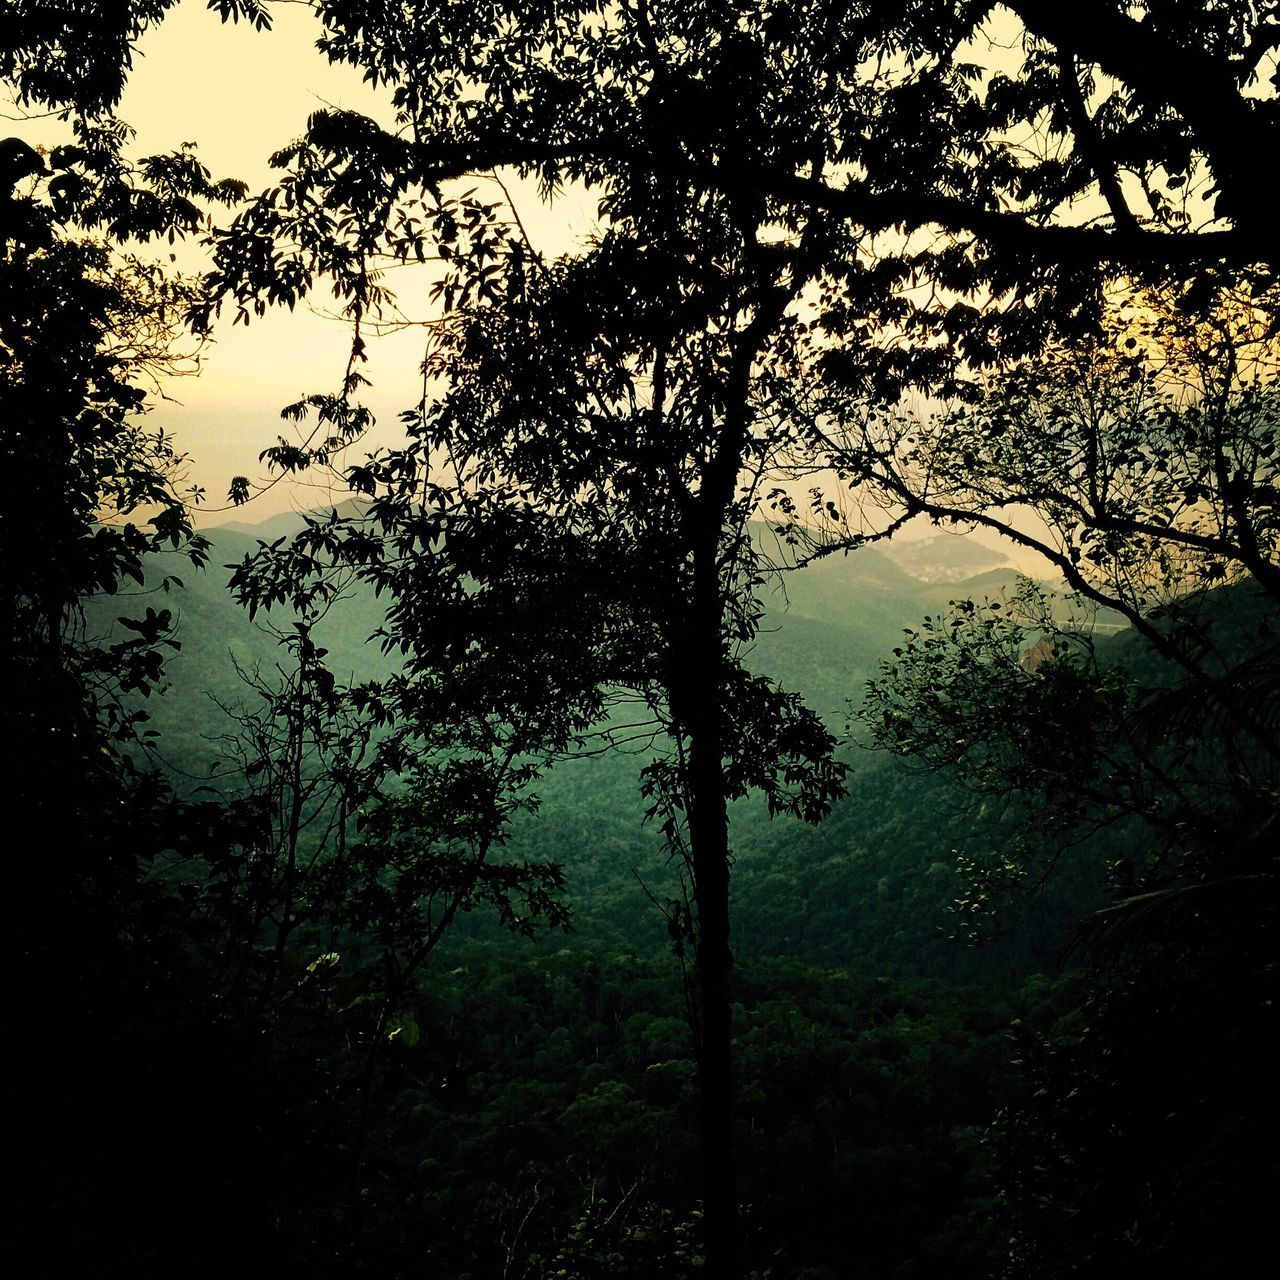 Serra do mar-Brasil Tranquility Tranquil Scene Scenics Beauty In Nature Nature Outdoors No People Brasil